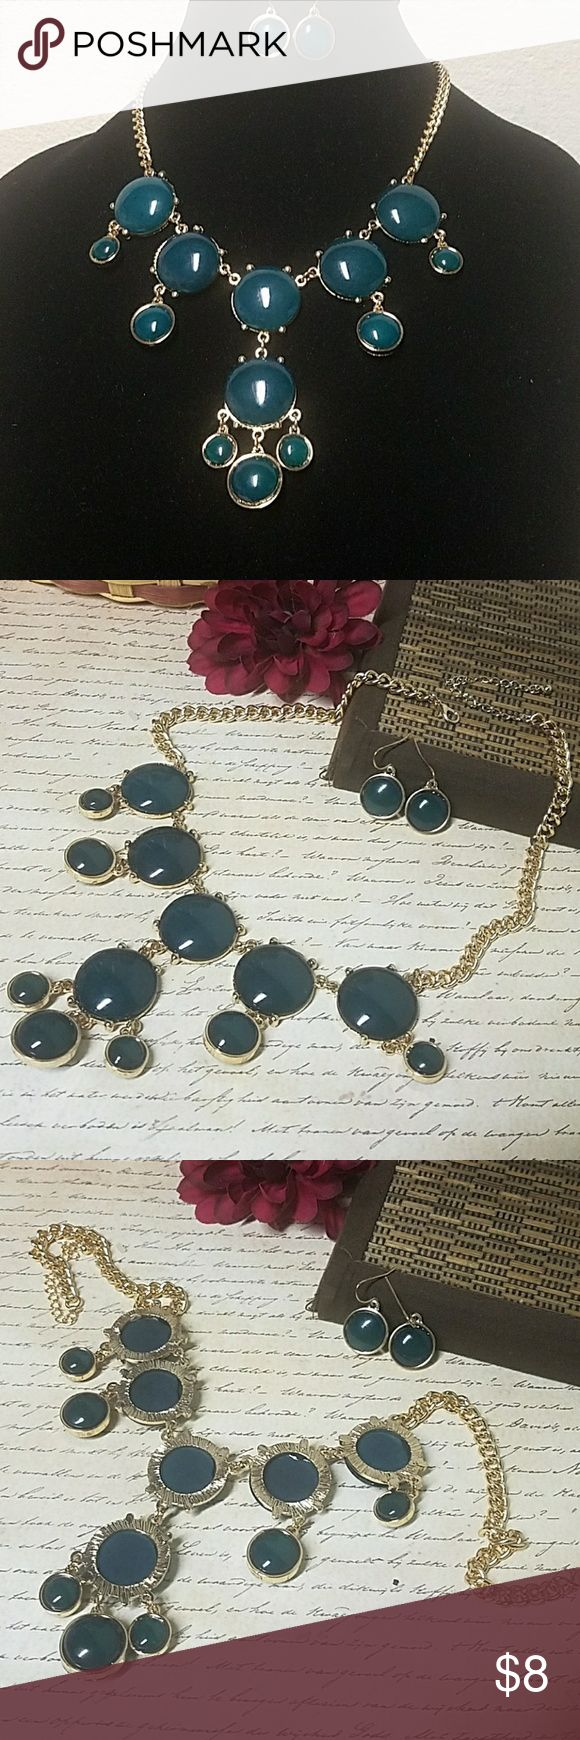 """*NWT*Deep Turquoise Bubble Drop Necklace 14""""+ 3"""" extender chain w/lobster clasp closure. Drop is about 3"""" on necklace and 1"""" for earrings. Item#S300 *ALL JEWELRY IS NWT/NWOT/UNUSED VINTAGE* 25% OFF BUNDLES OF 3 OR MORE ITEMS! REASONABLE OFFERS ACCEPTED! BUY WITH CONFIDENCE~TOP 10% SELLER, FAST SHIPPING, 5 STAR RATING, & FREE GIFT w/MOST ORDERS! Charming Charlie Jewelry Necklaces"""